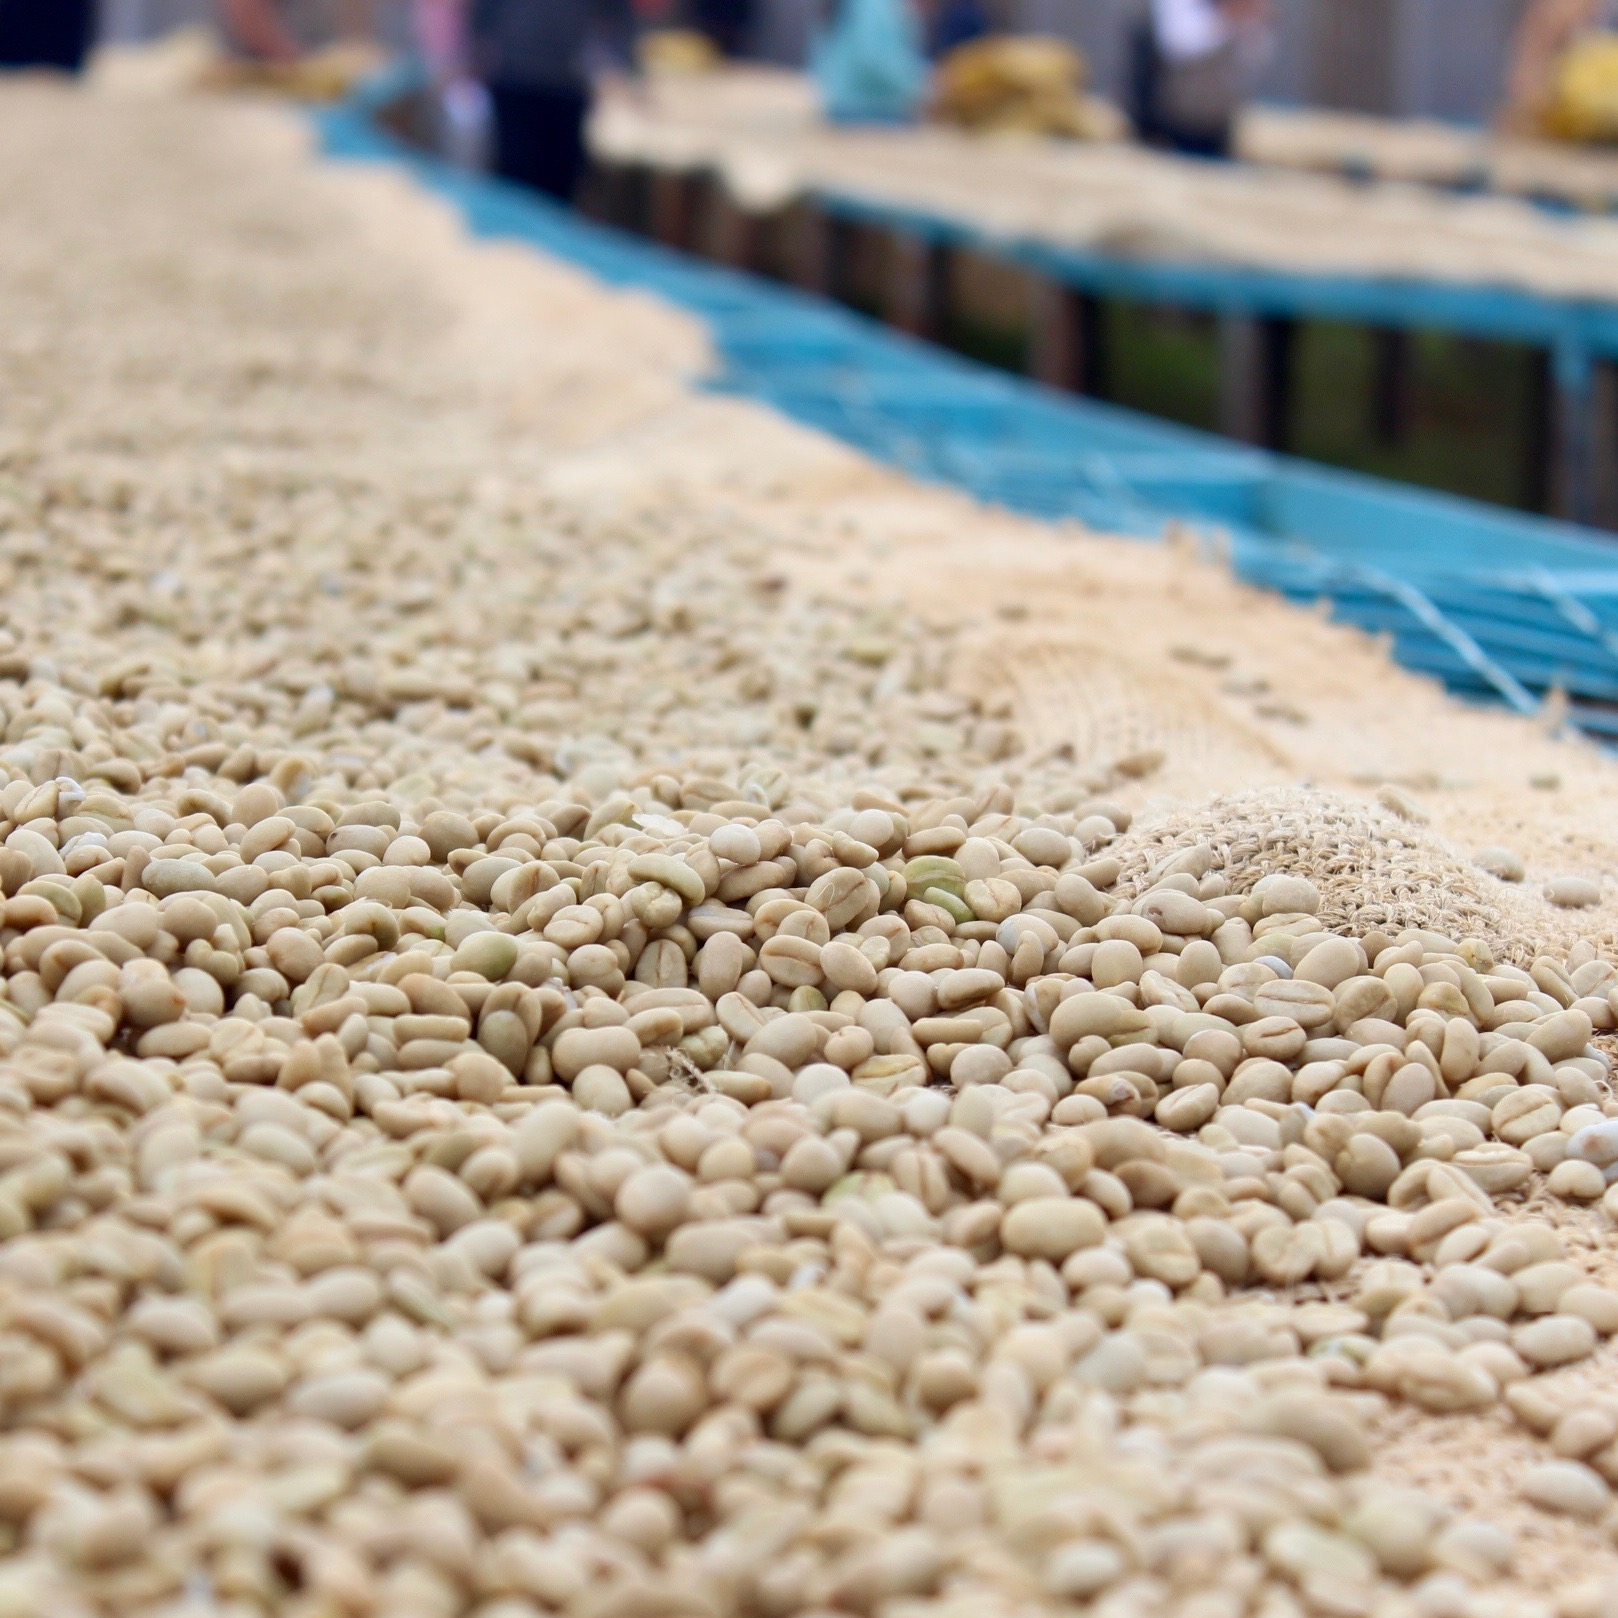 """The drop in 'C' prices below US$1.00 in August 2018 has drawn the attention of major media sources covering the topic and reaching a readership of coffee consumers worldwide."" -"